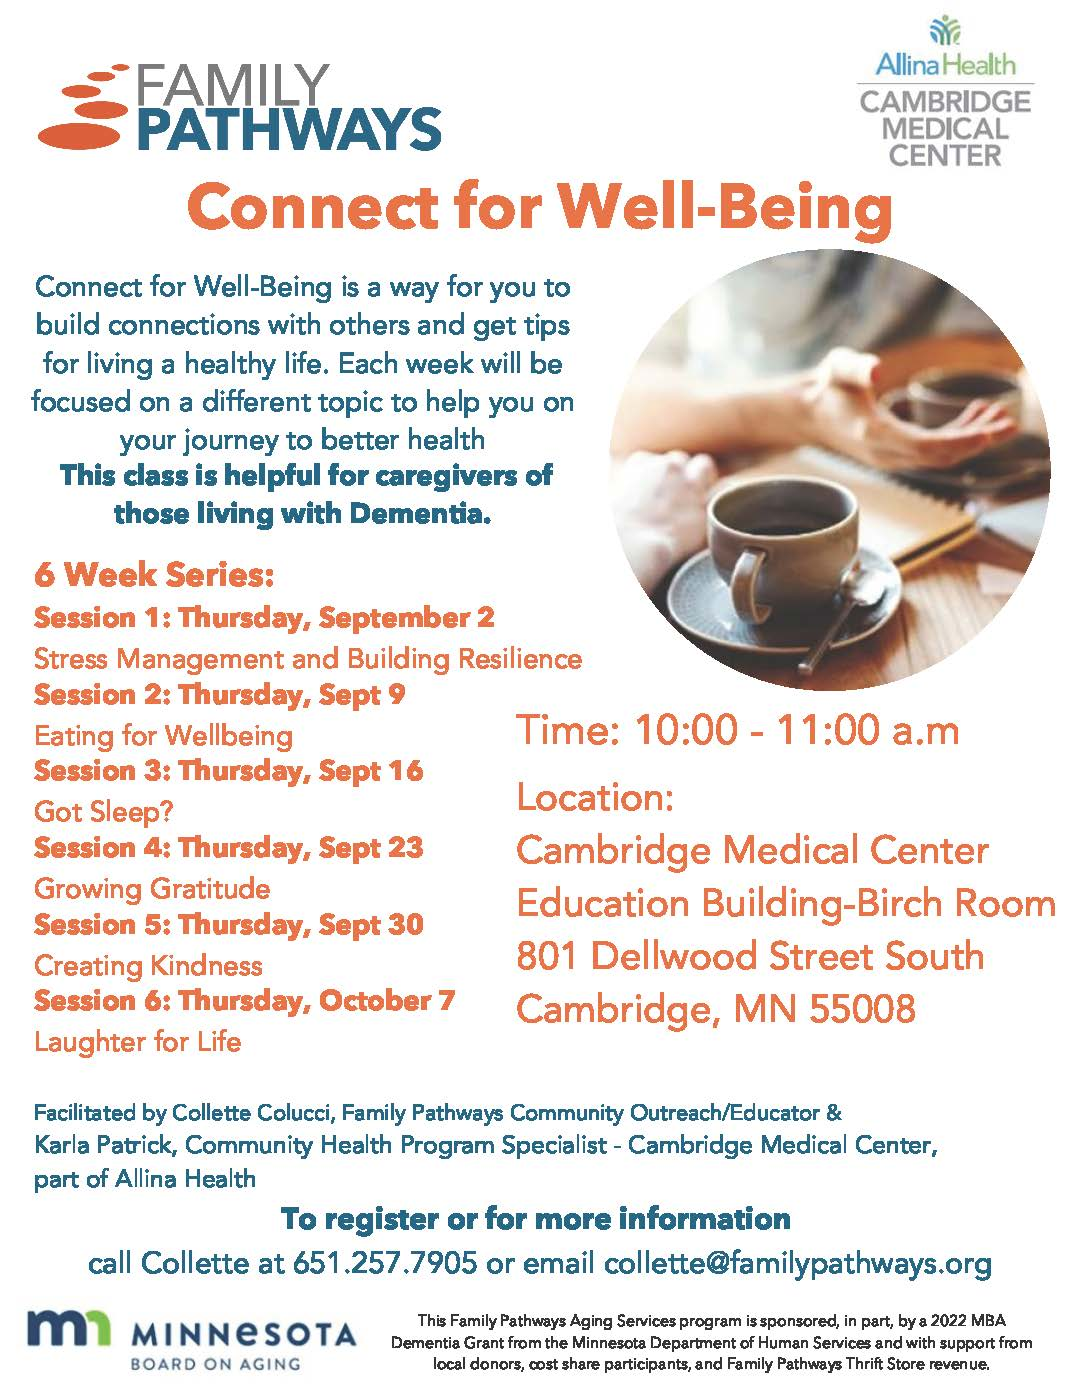 Family Pathways Connect for Well-Being flyer